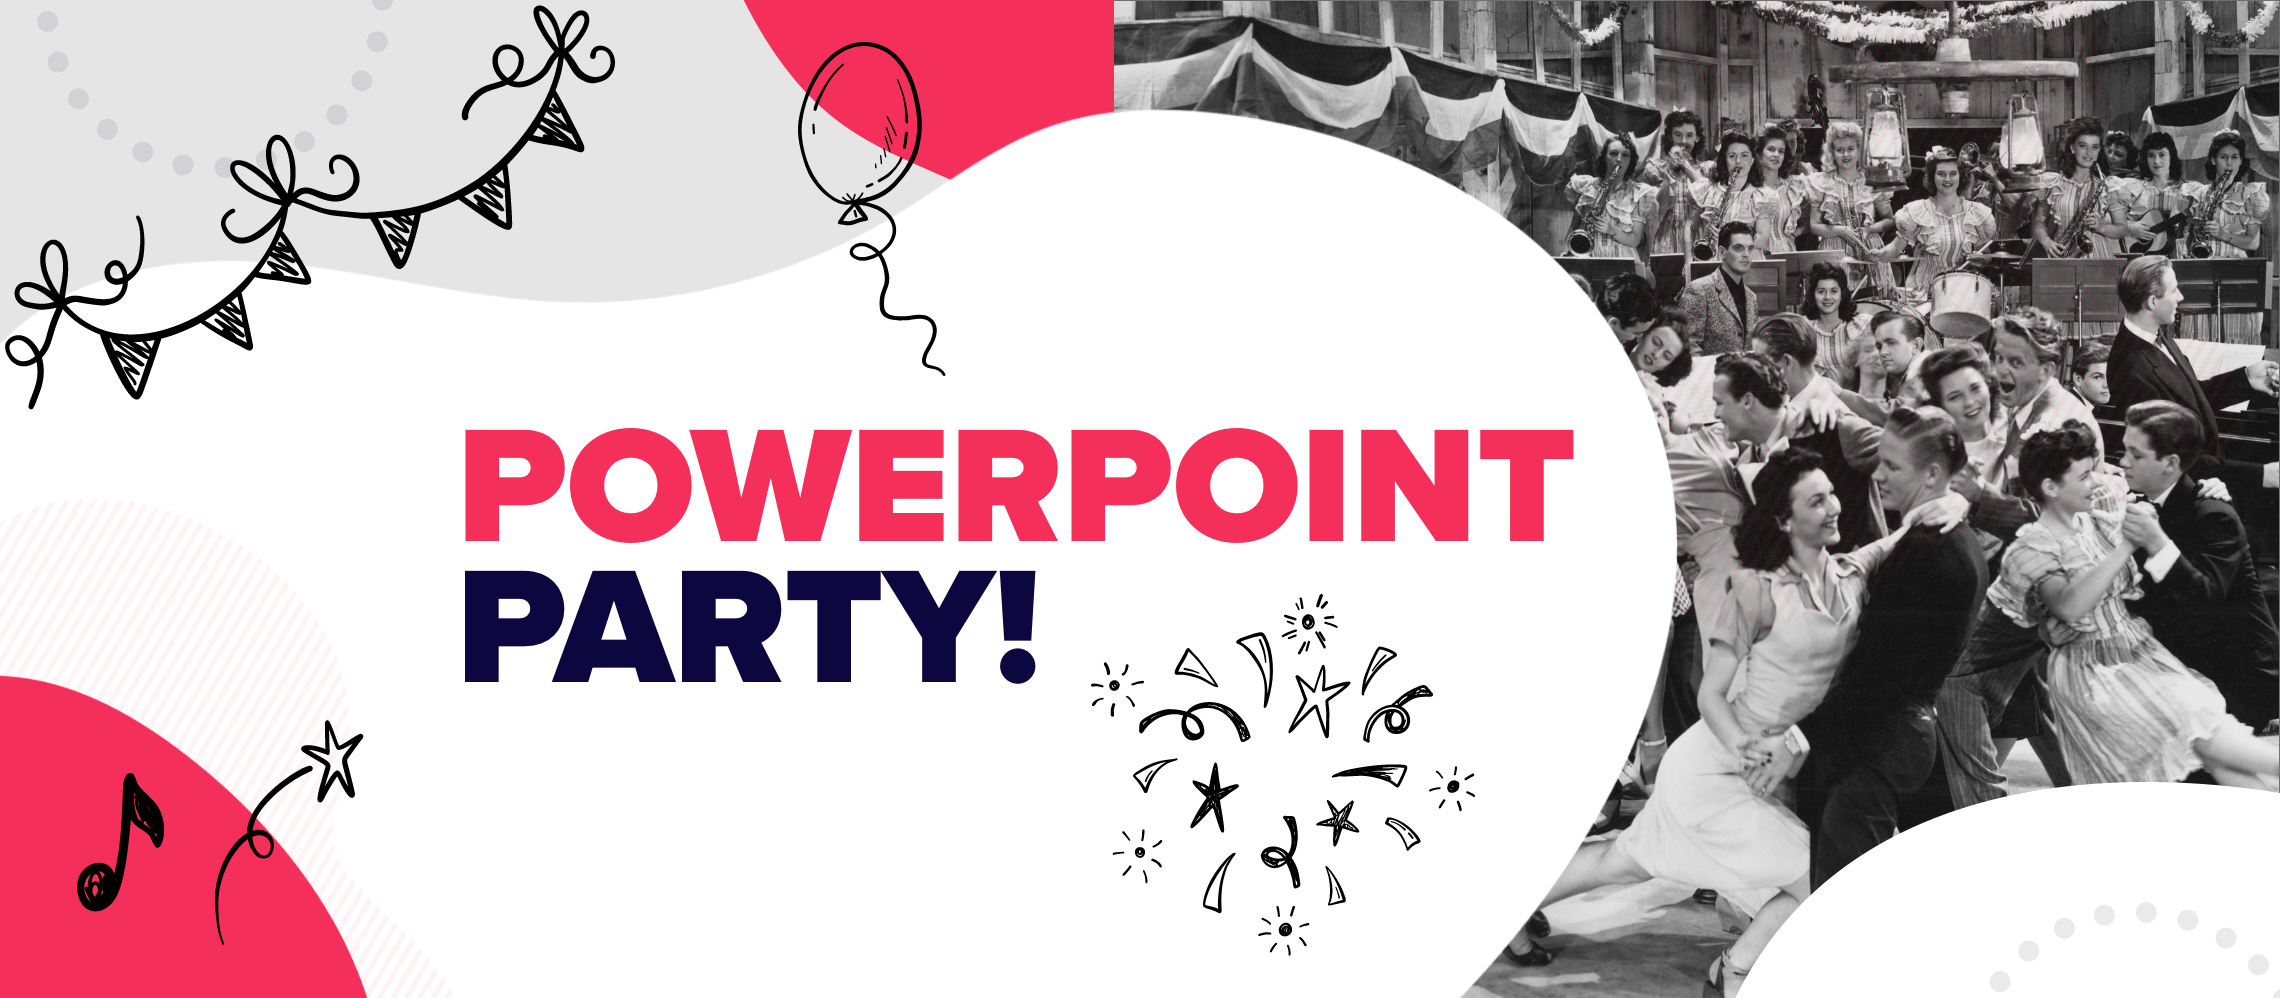 PowerPoint party time: throw the virtual event of the year